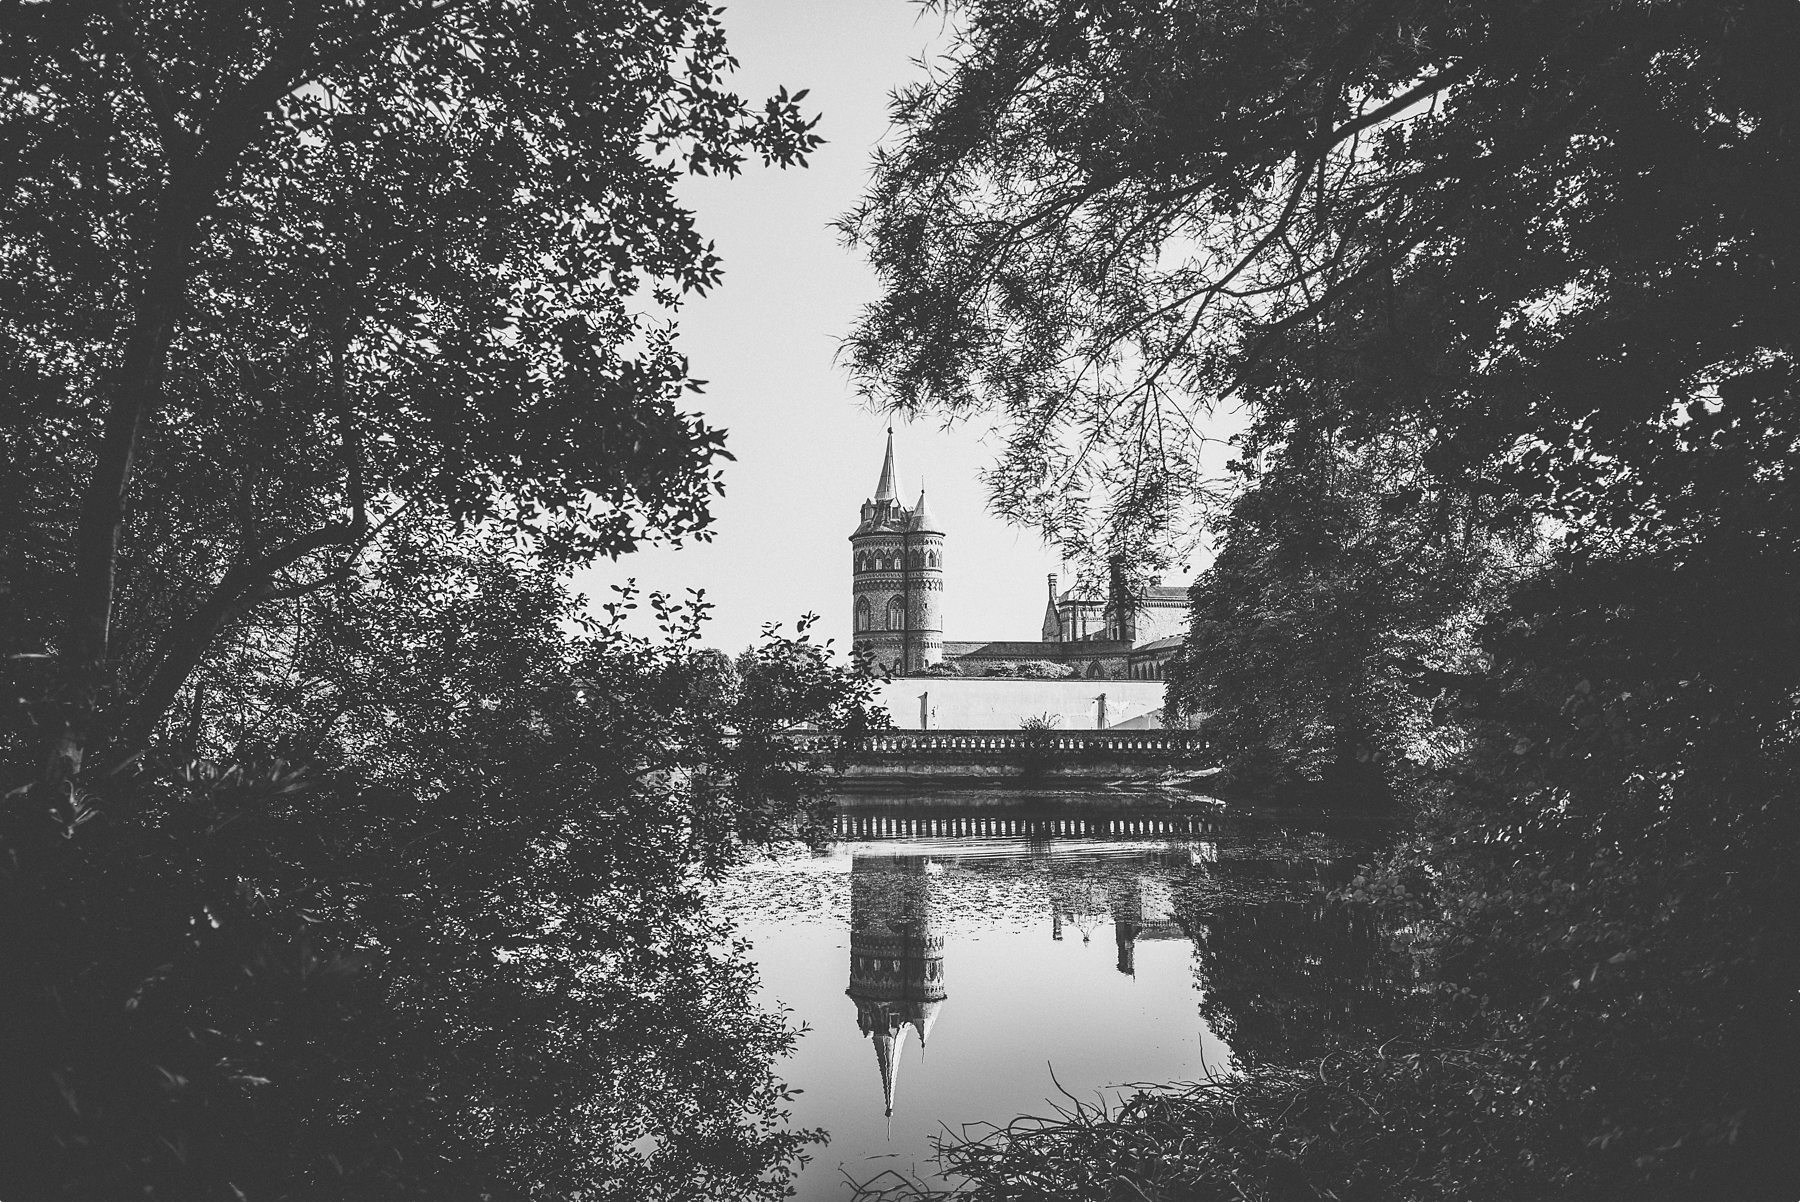 Horsley Towers wedding venue as seen from the lake